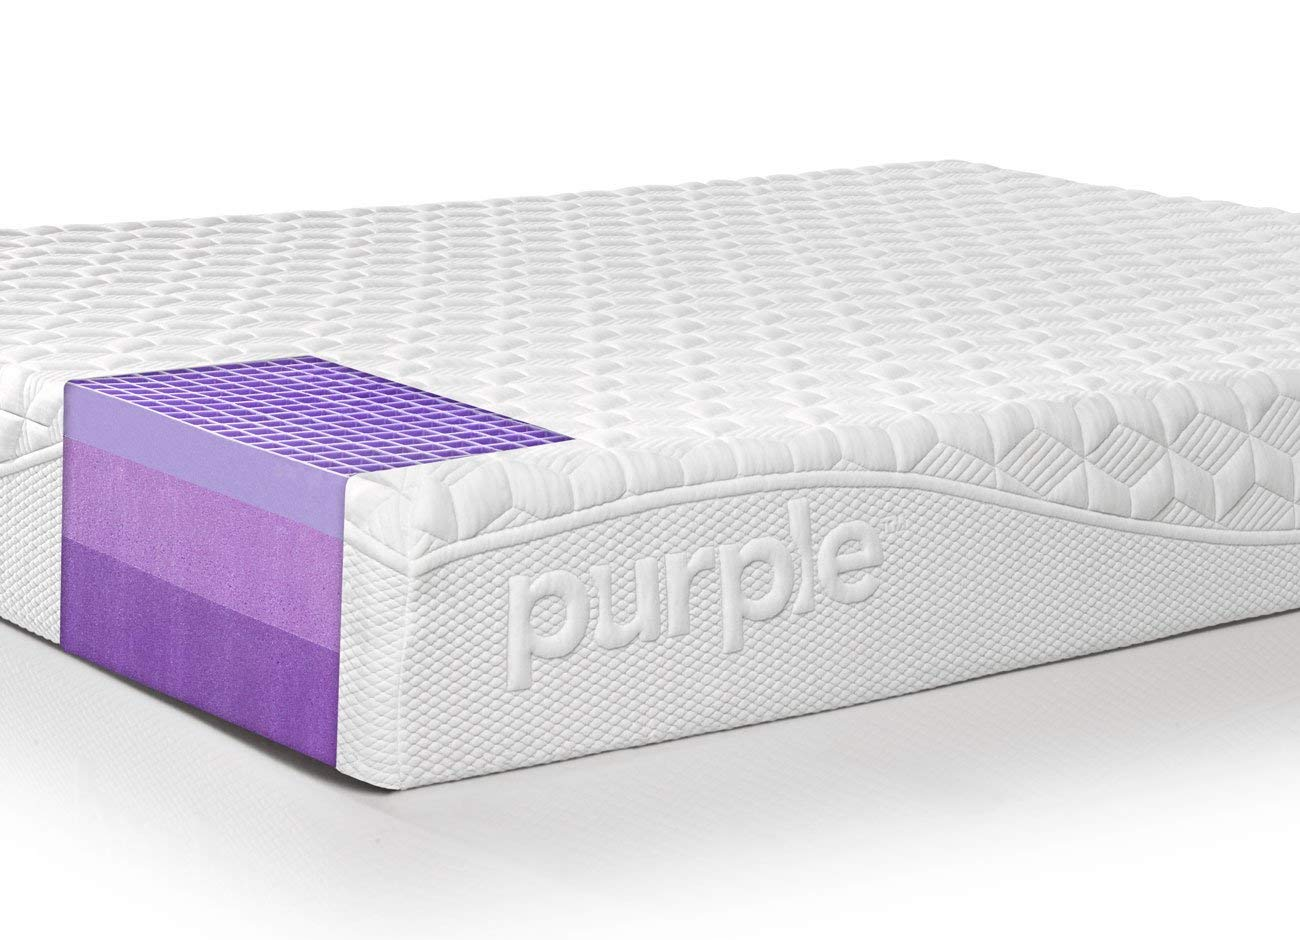 Purple Queen Memory Foam Mattress Under 1000 $ topratedhomeproducts info